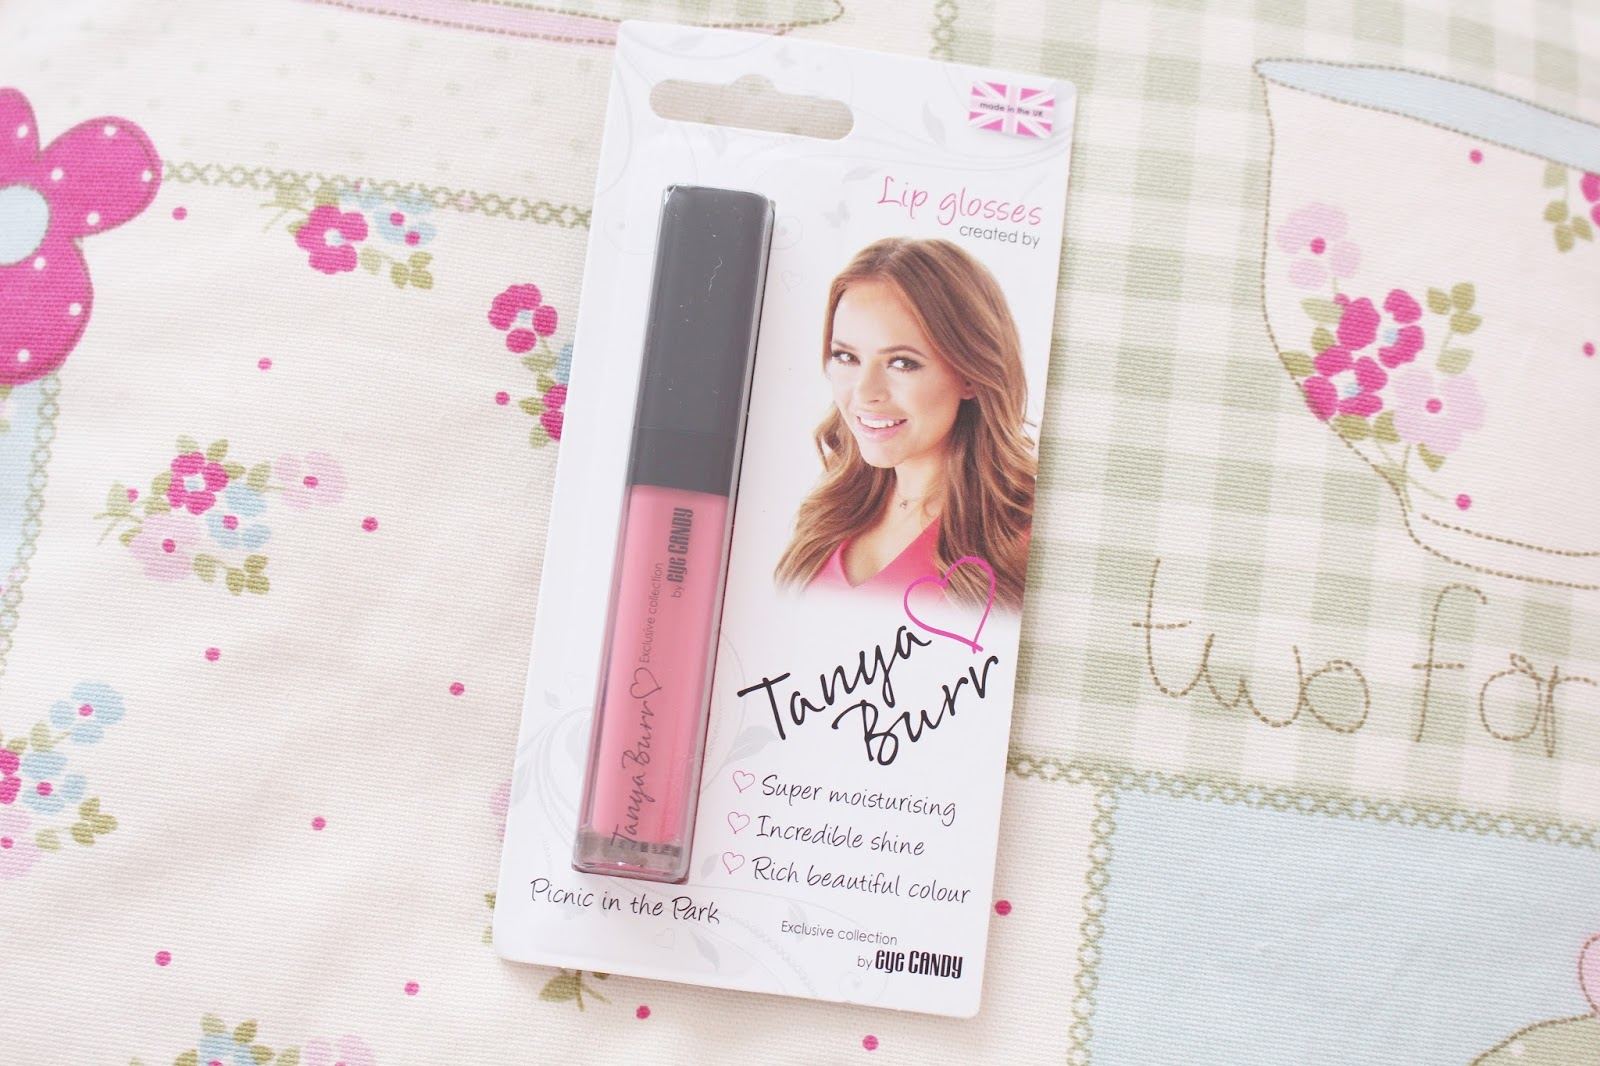 Tanya Burr Lipgloss Picnic in the Park Review